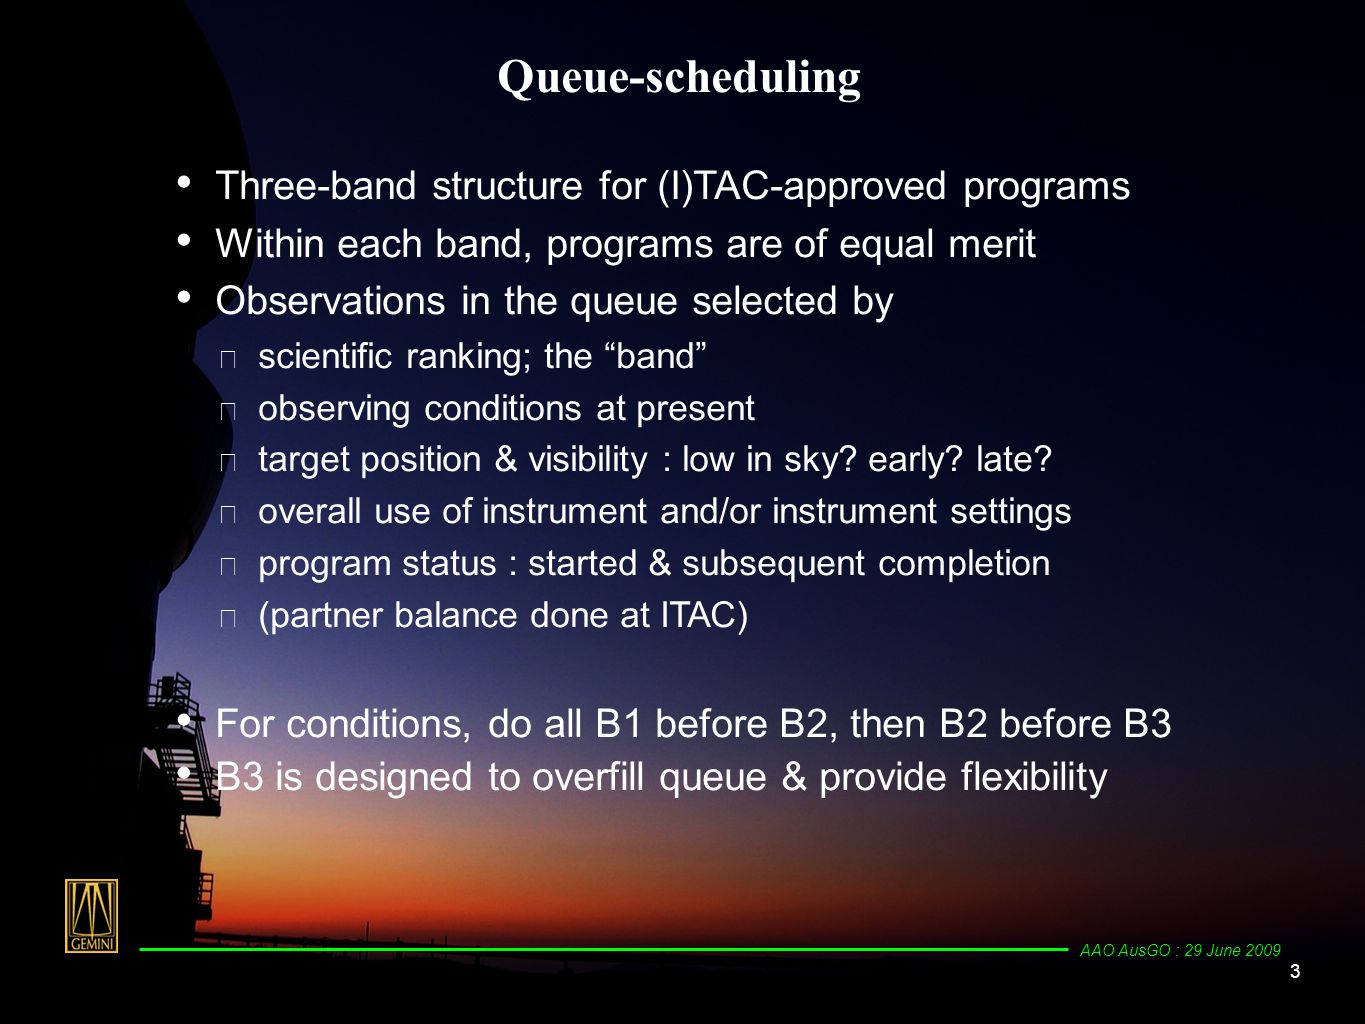 4 AAO AusGO : 29 June 2009 Queue-scheduling Matching priority & observing conditionsobserving conditions ✴ Cloud cover, CC ✴ Image quality, IQ ✴ Sky brightness, SB - optical ✴ Water vapour, WV - NIR, MIR Advantages : ★ able to fit observations with their required conditions to actual conditions ★ can set aside time before hand for SToO ★ quick-response (< 5 minutes) to RToO; e.g., GRBs instrument switch is simply moving the science-fold